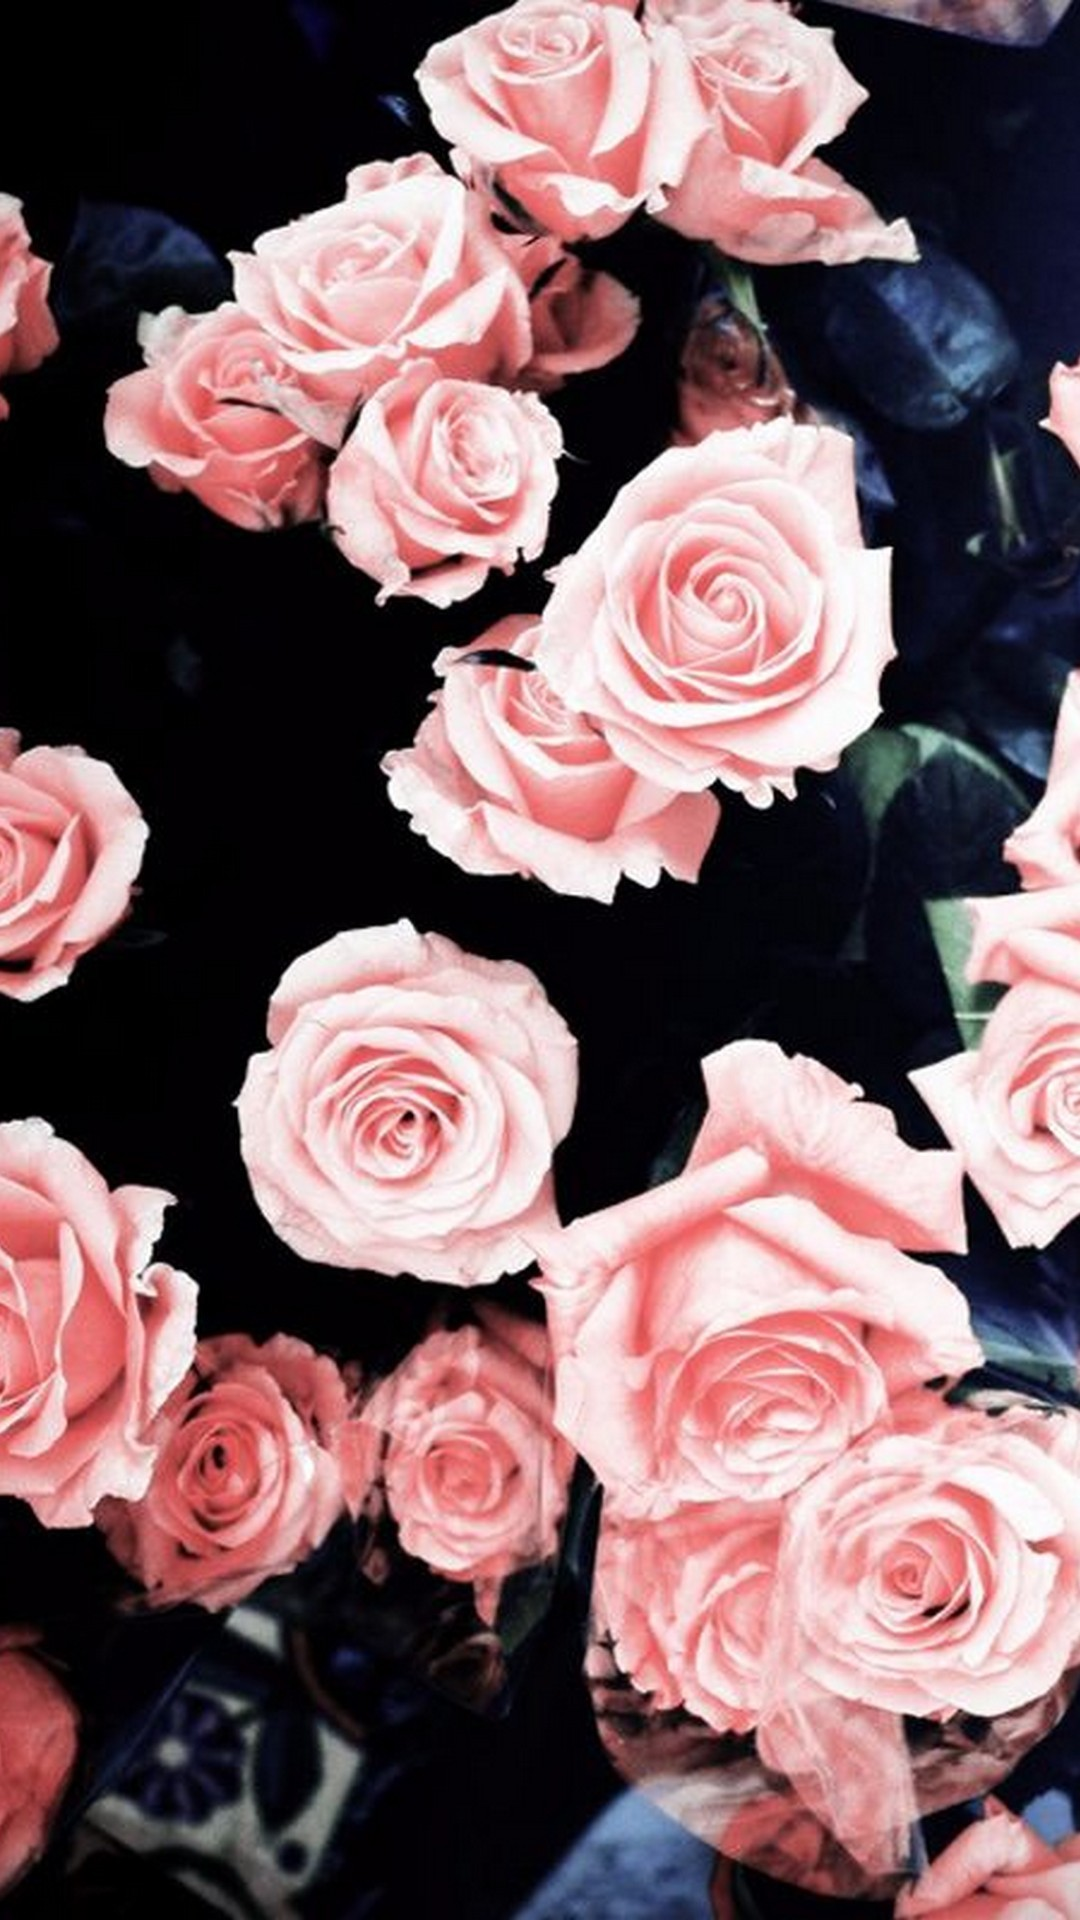 Res: 1080x1920, Pink Rose Girly Wallpaper For Mobile